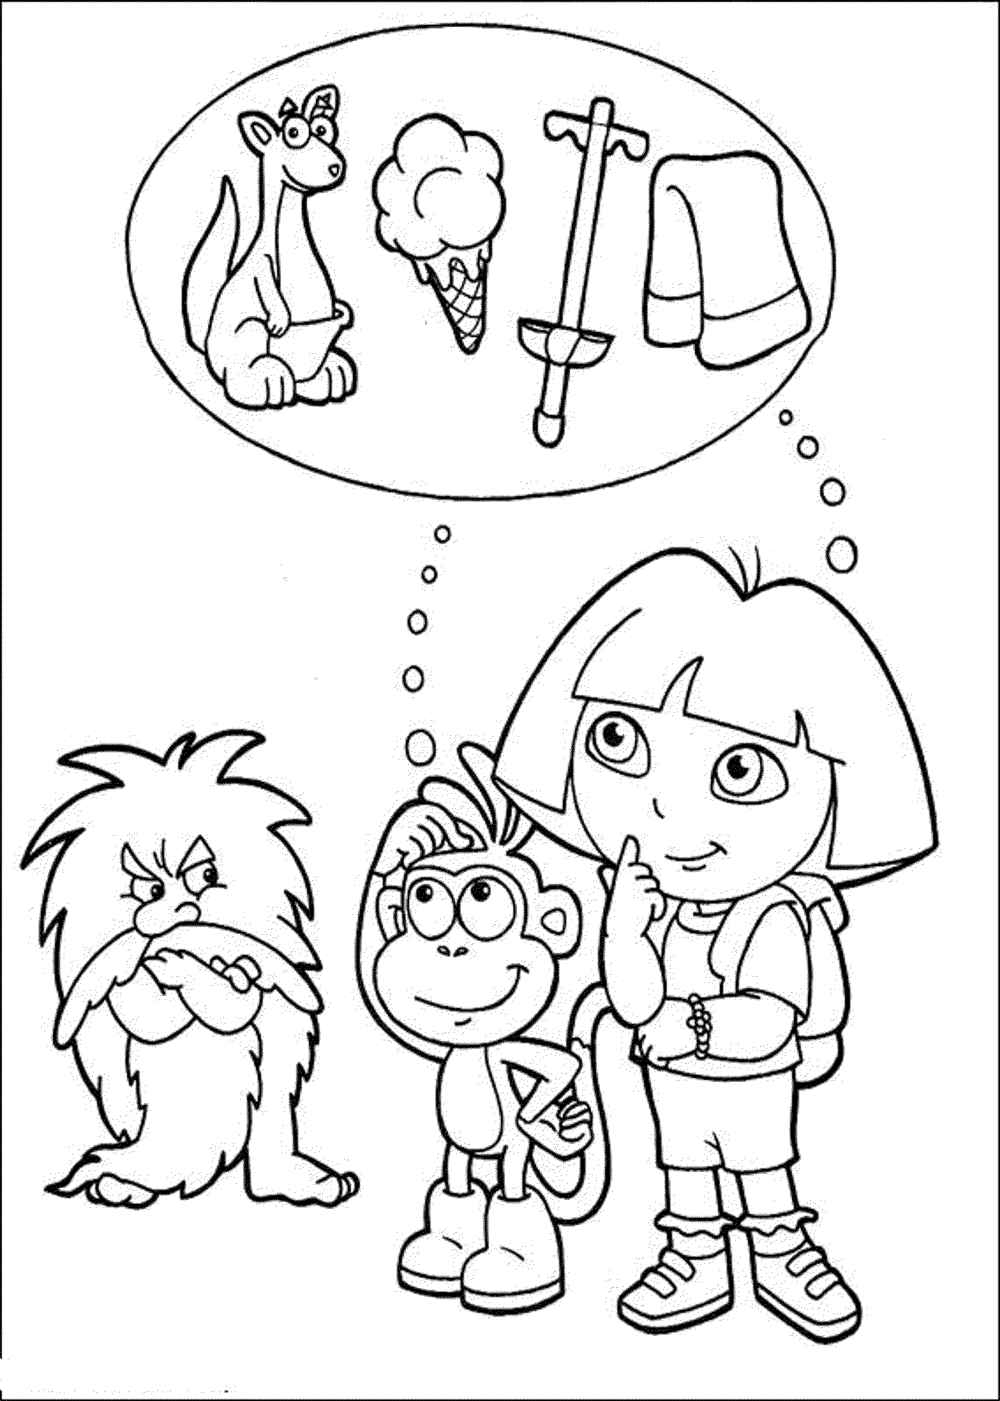 dora color pages print download dora coloring pages to learn new things color dora pages 1 1